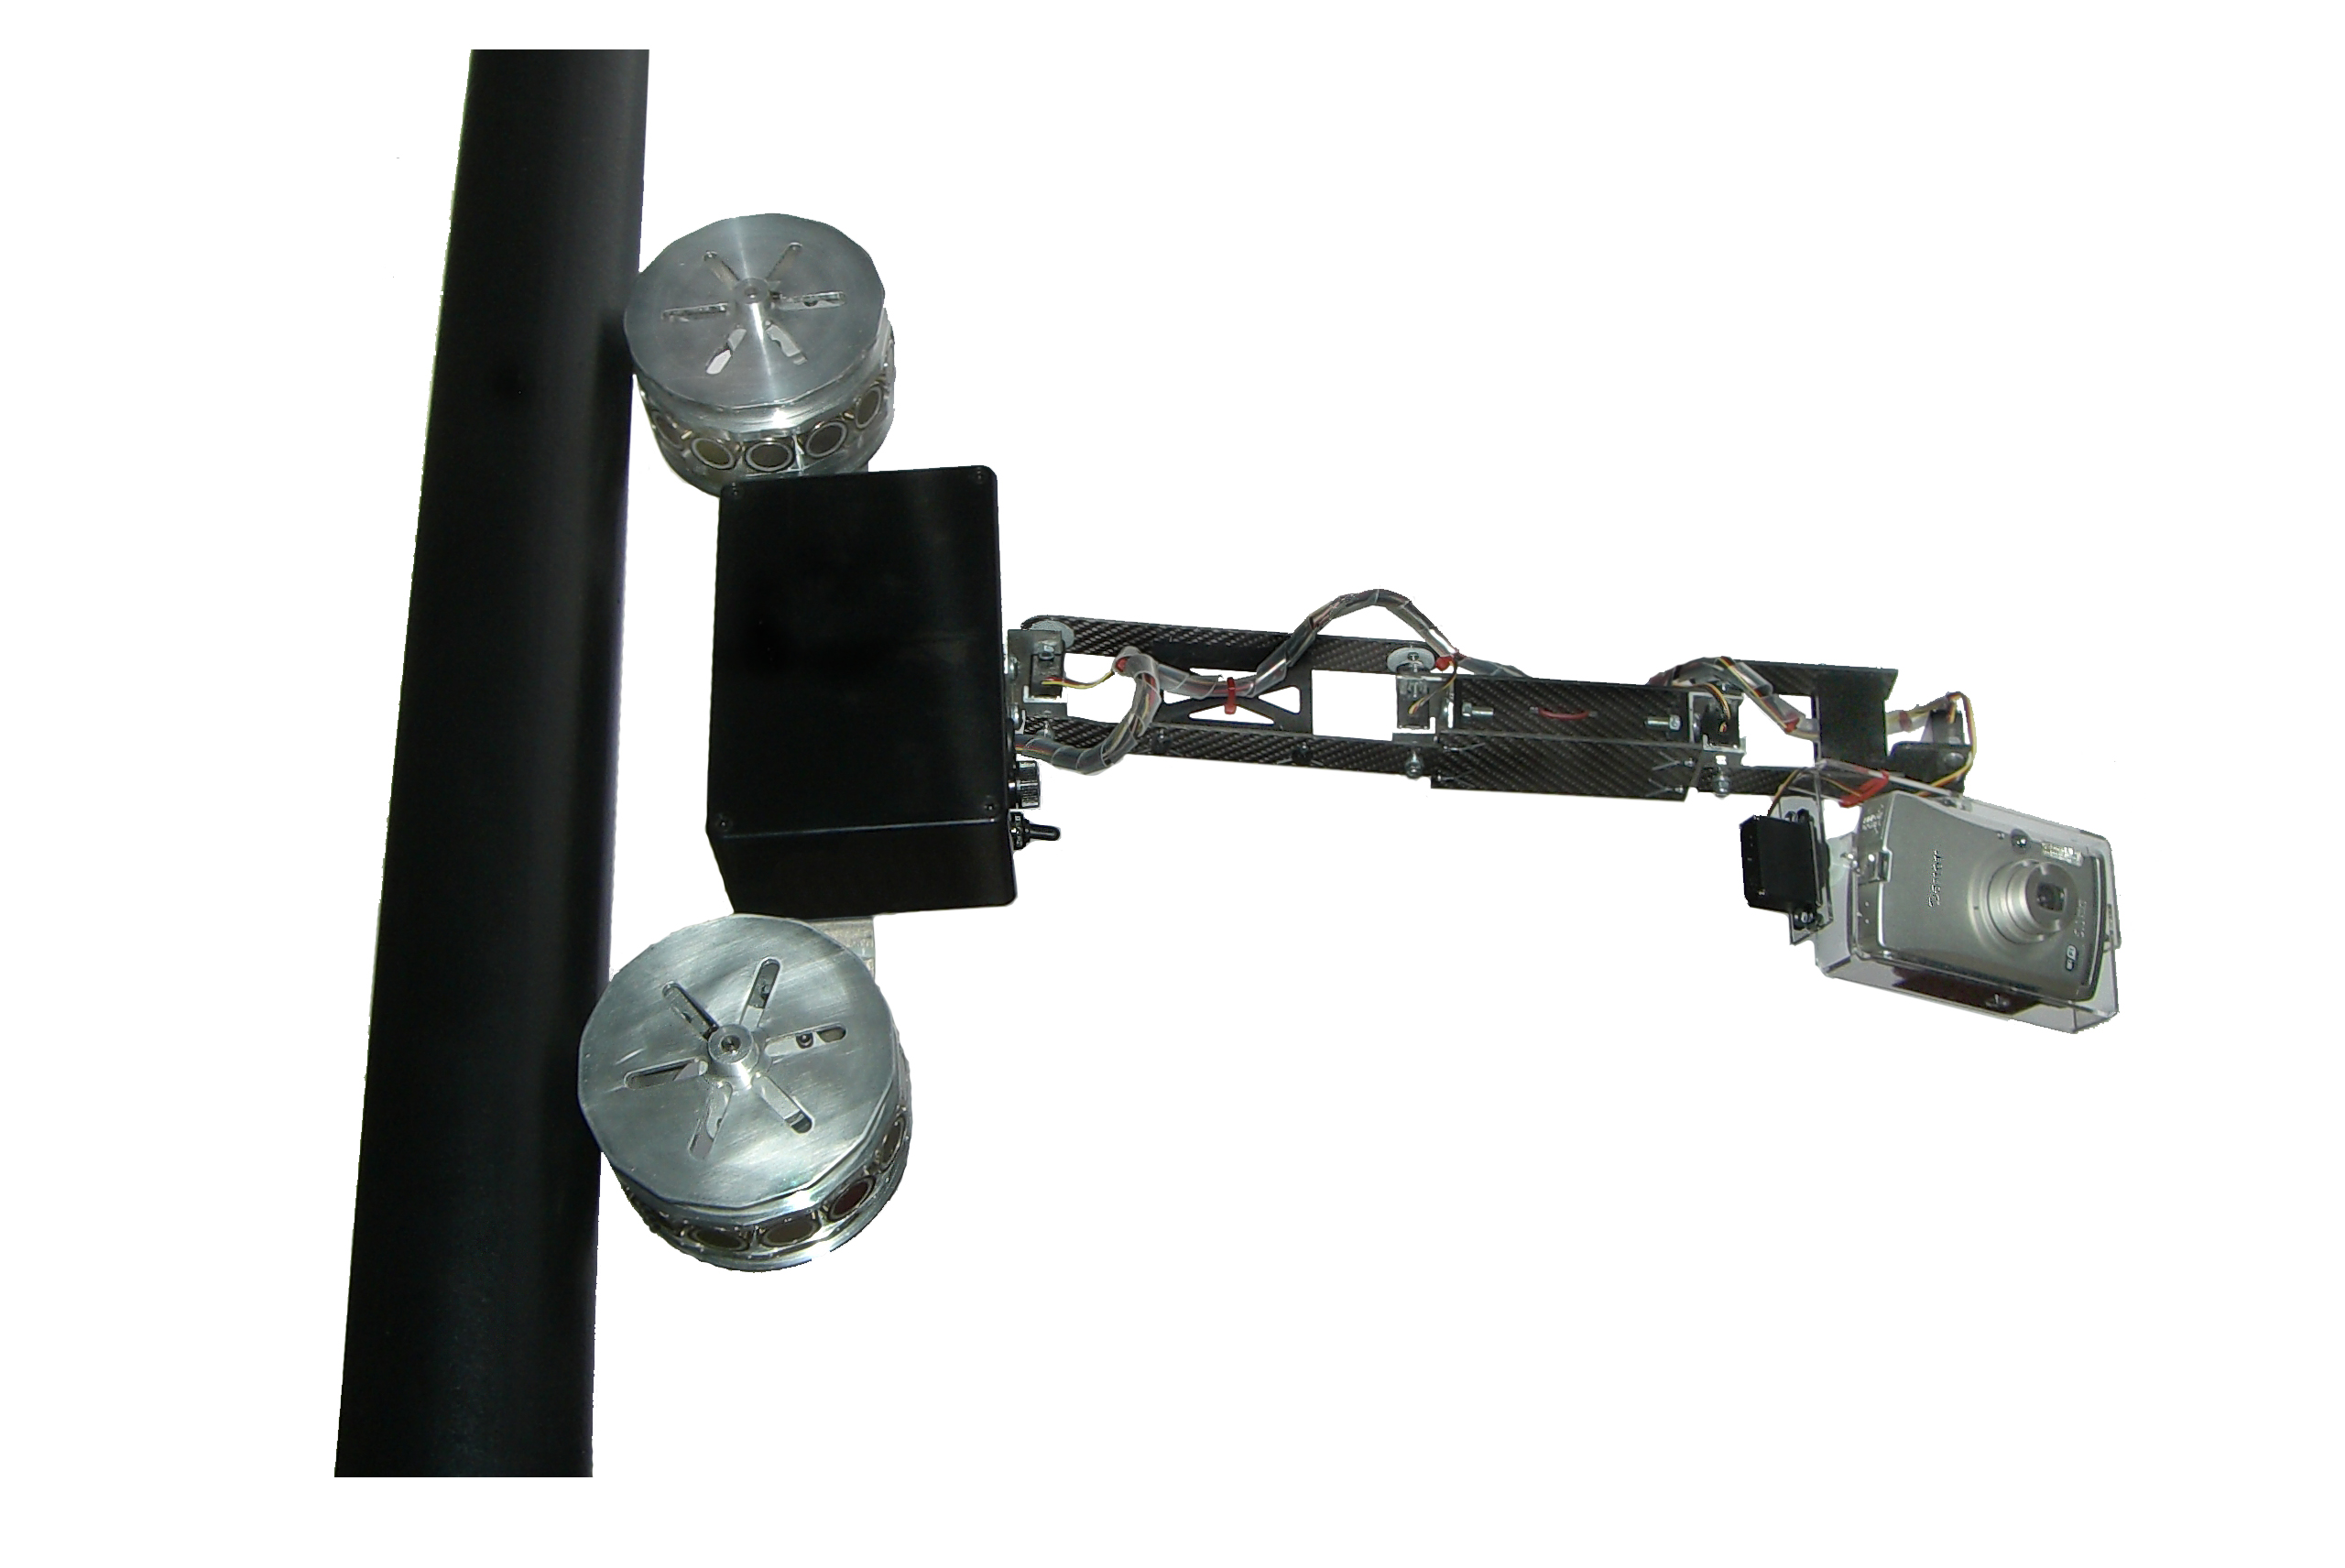 cctv beneficial tool Visit our anti-cctv for news and info such as the national cctv strategy no cctv - anti cctv articles news  that show cctv is not an effective crime fighting tool.